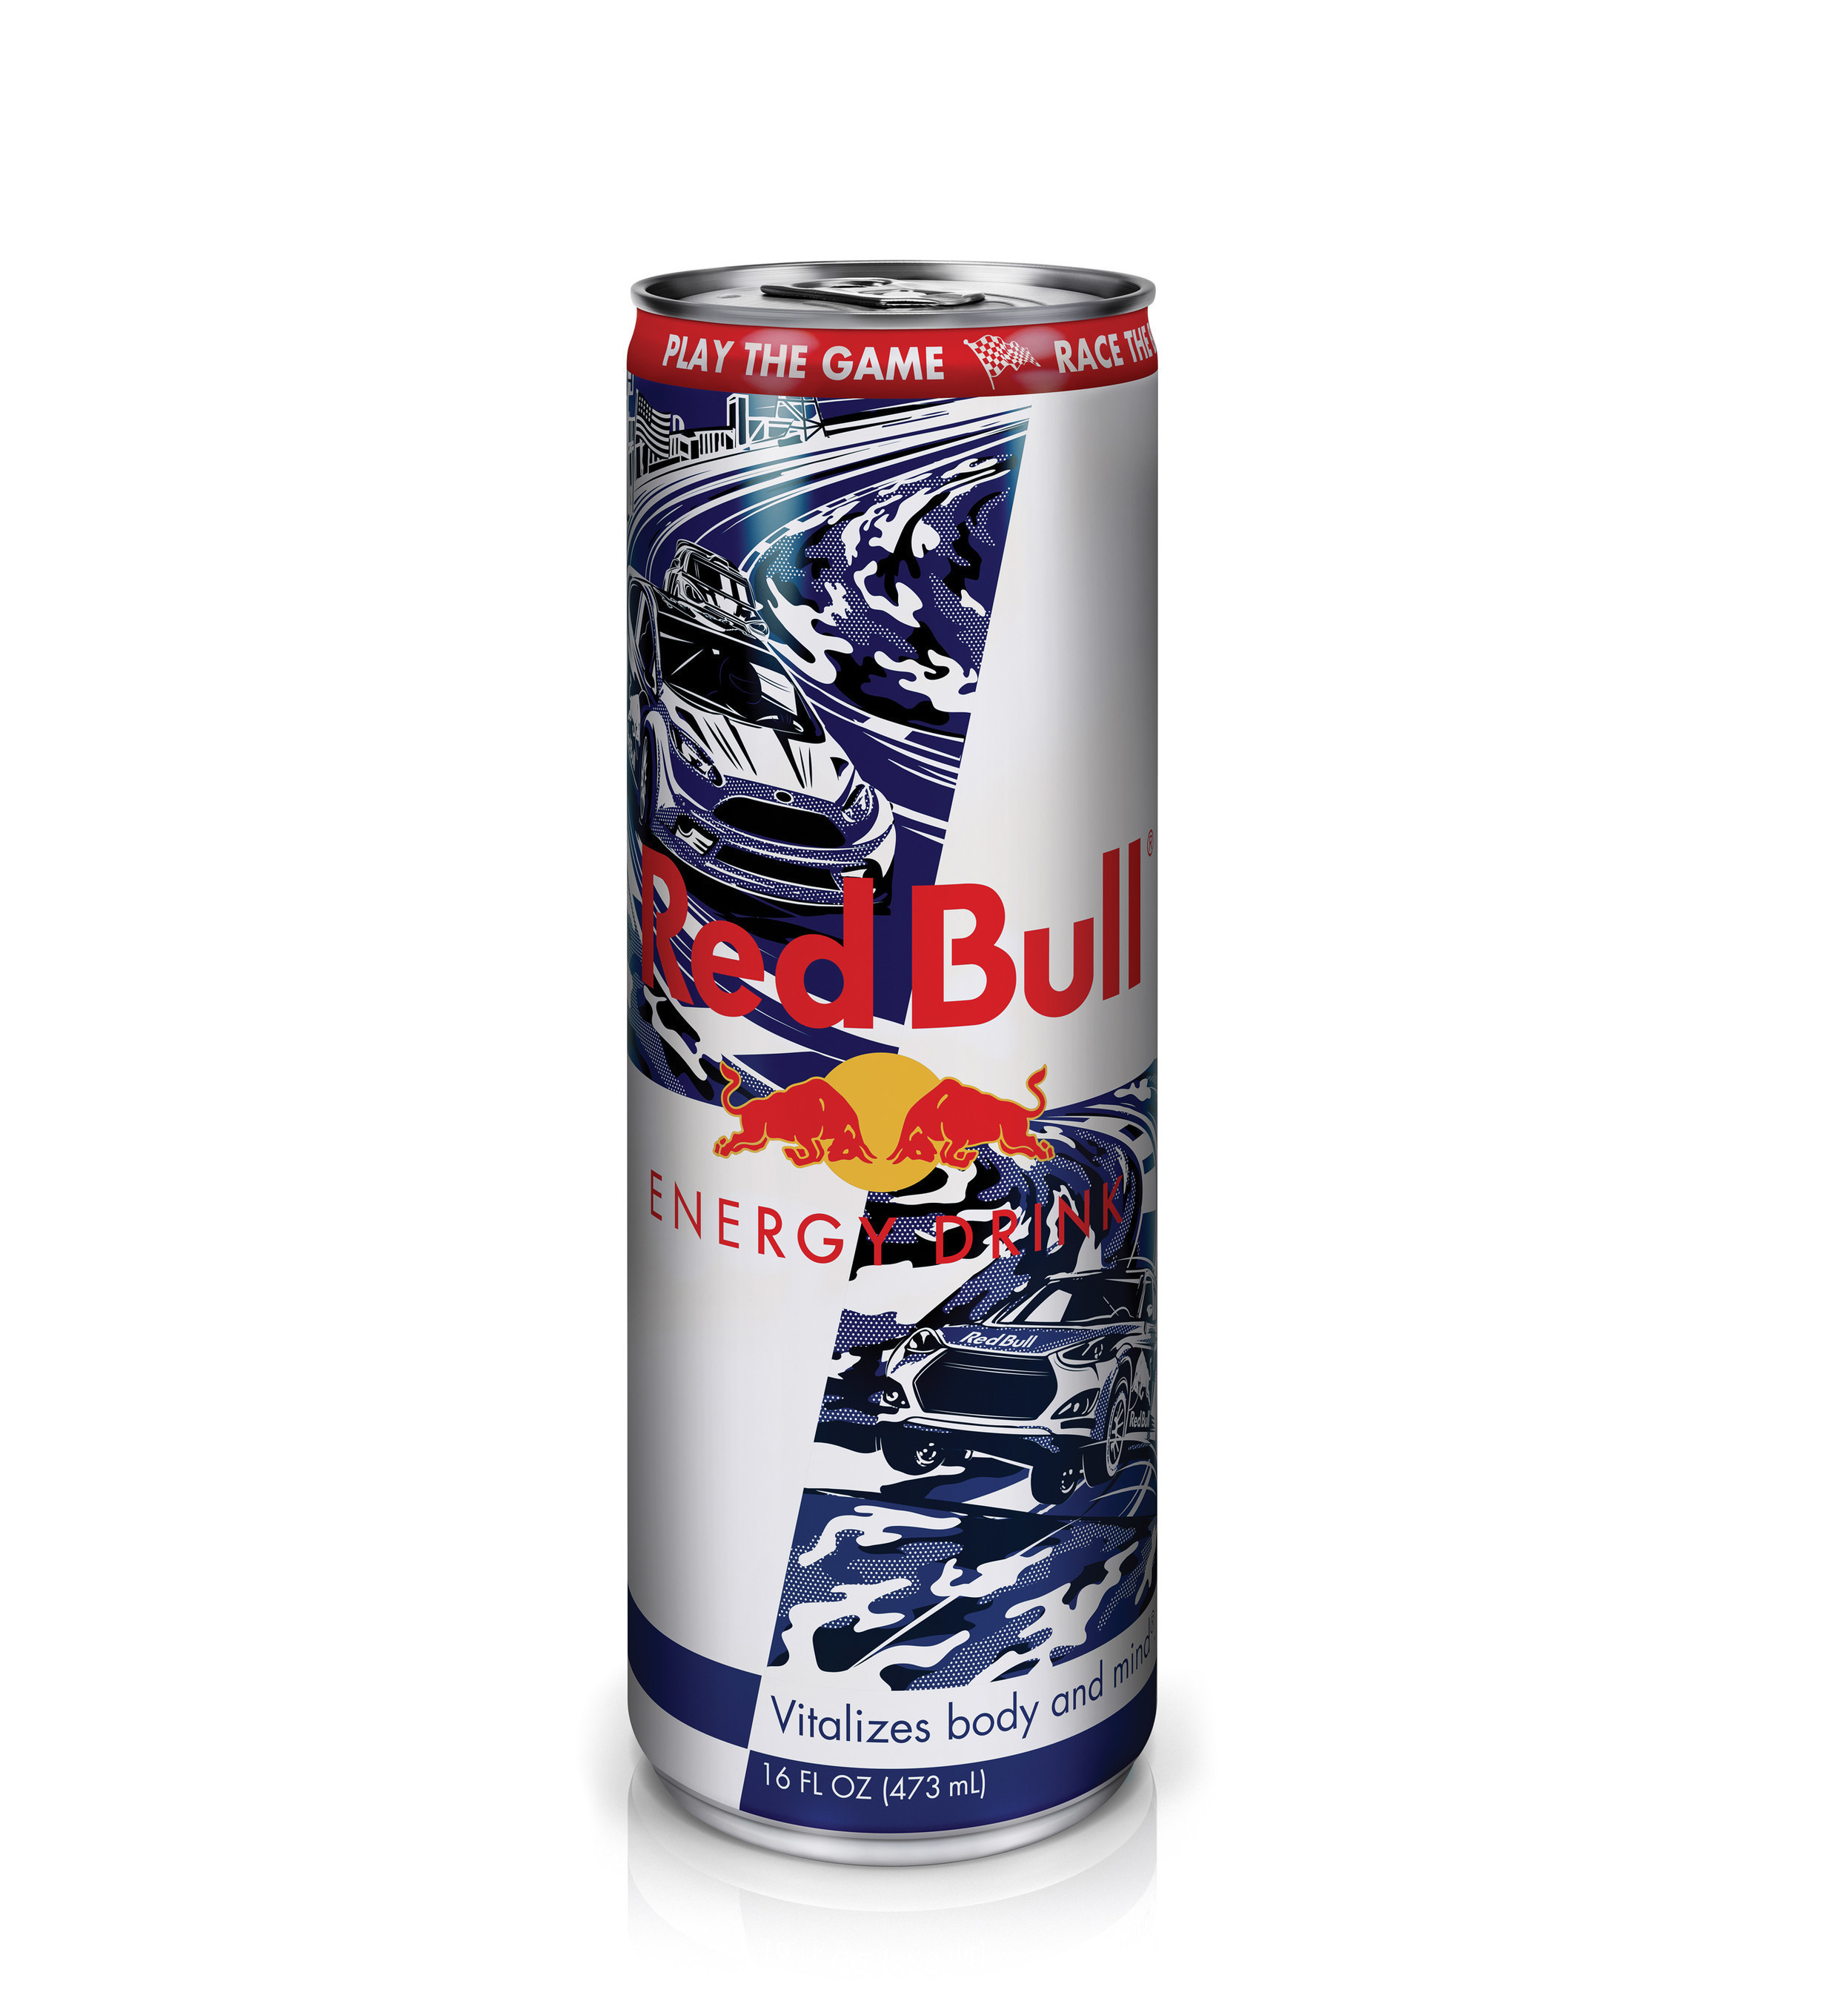 "Red Bull's 2015 limited edition camouflaged-themed can is available in military channels through the end of July. For the 4th year, a portion of the proceeds from cans sold on bases will benefit the Military Warriors Support Foundation. The can incorporates the Red Bull Global Rallycross series, which will host an event stop at the Marine Corps Air Station New River (MCAS New River) in Jacksonville, NC, airing nationally on NBC on Sunday, July 5th at 5:00 pm EDT. Fans can play the ""Red Bull Global Rallycross Challenge"" online game for free at http://rbgrc.redbull.com."